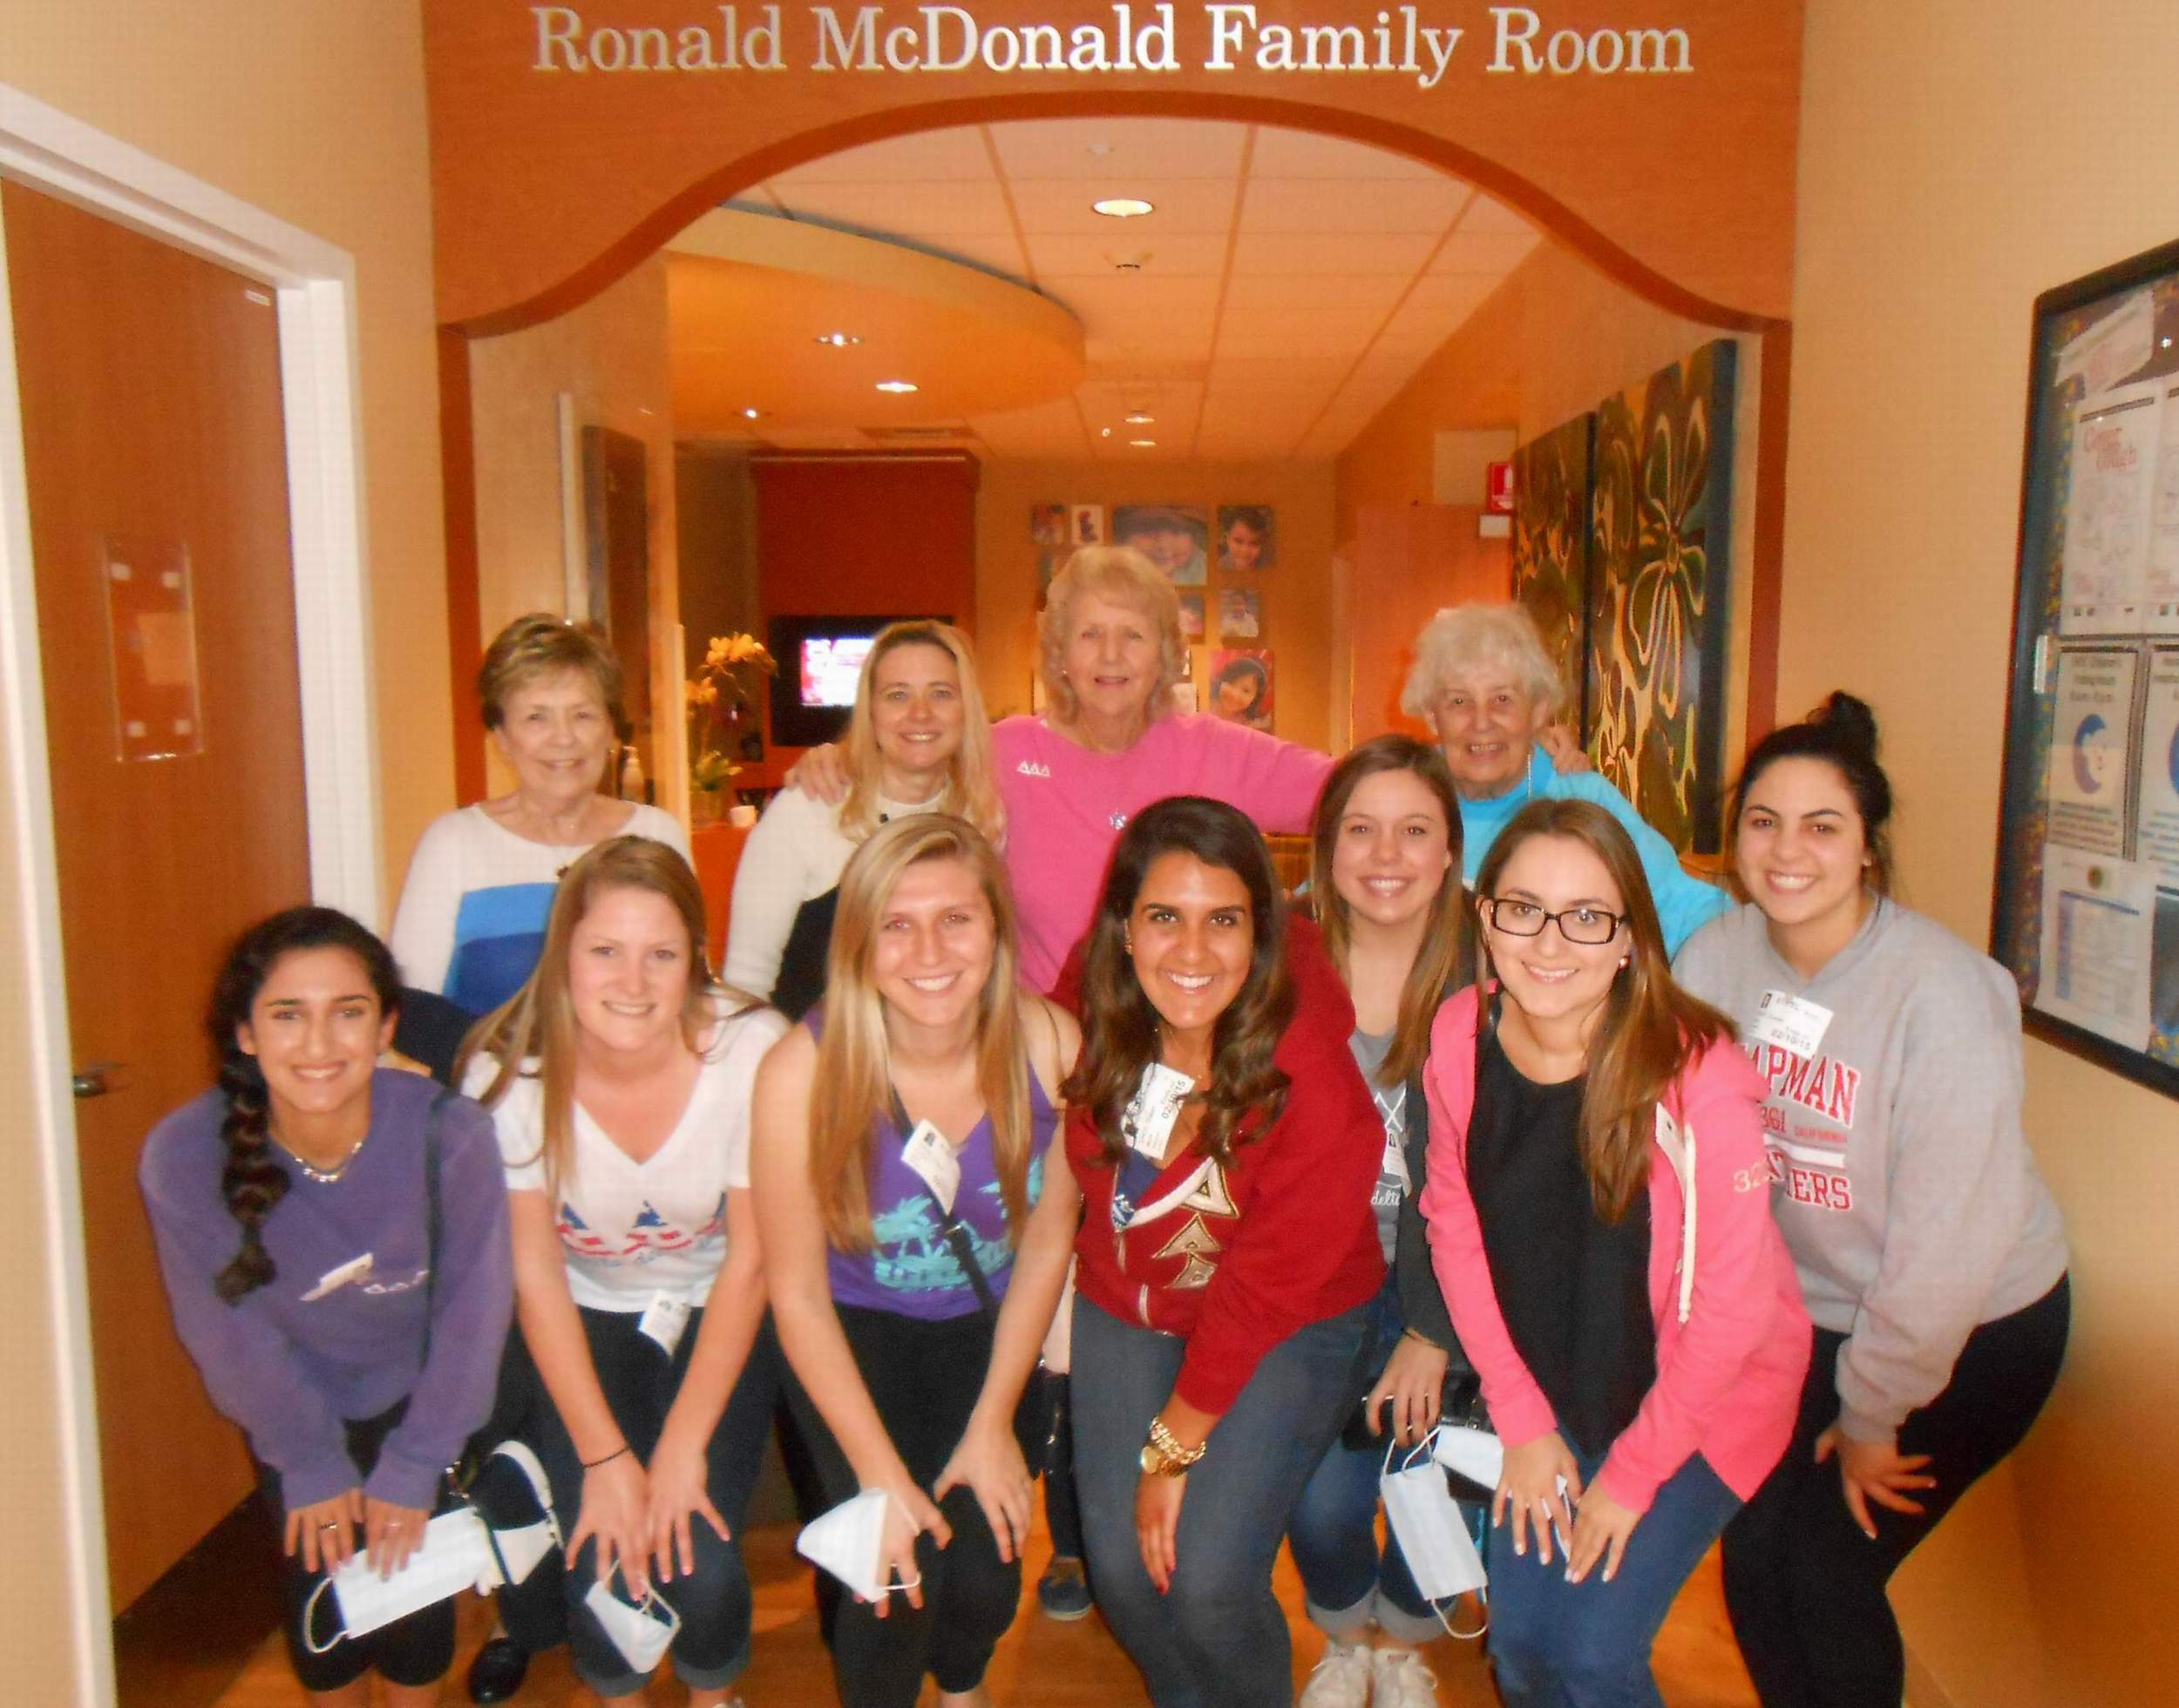 2015 DELTA LOVE DAY - Ronald McDonald Family Rm at CHOC